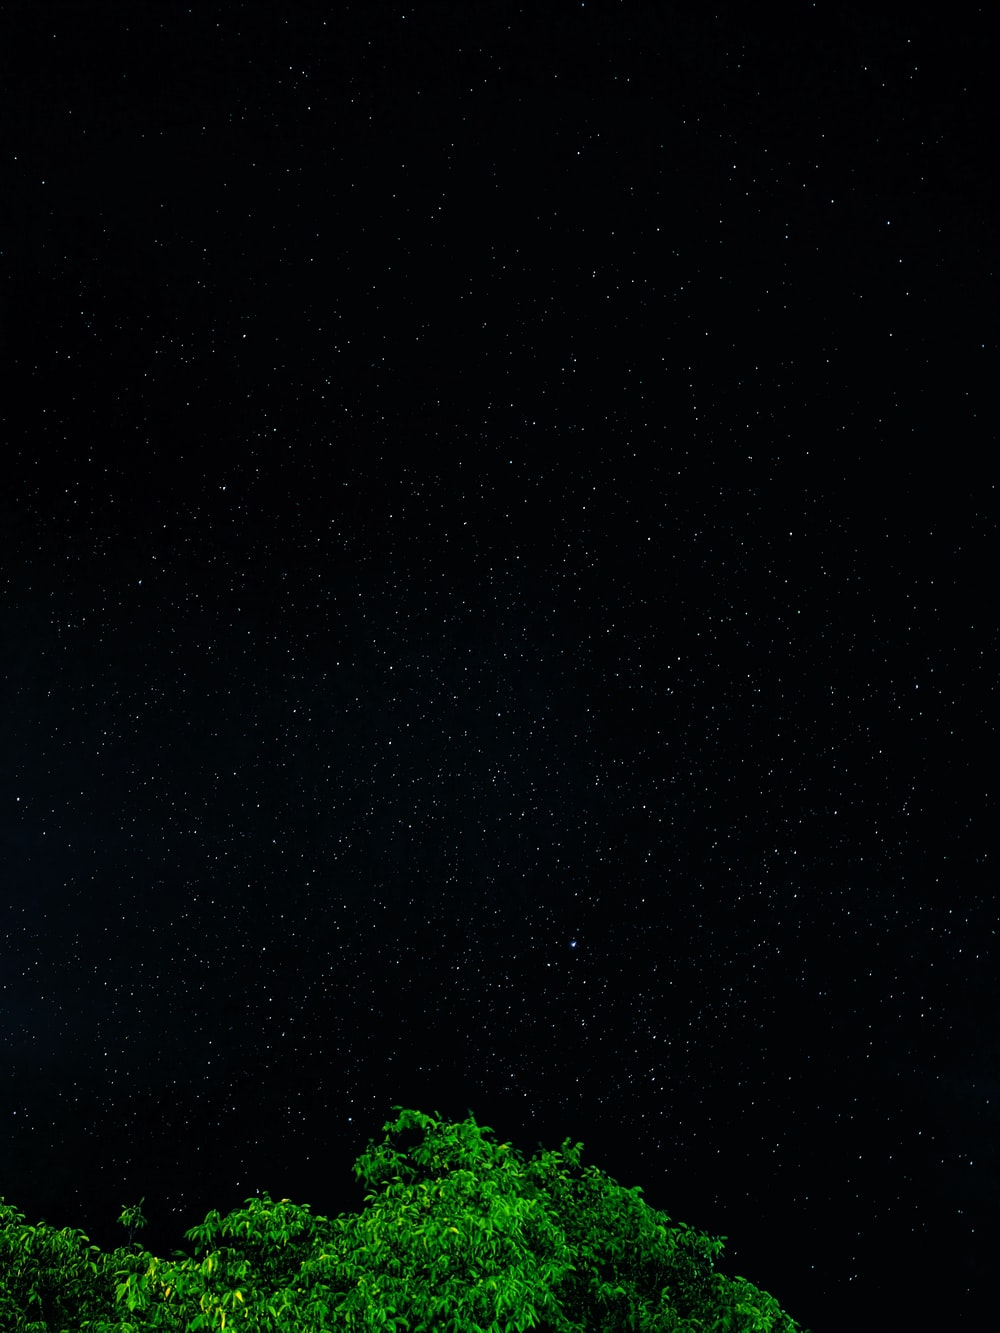 green trees under black sky during night time